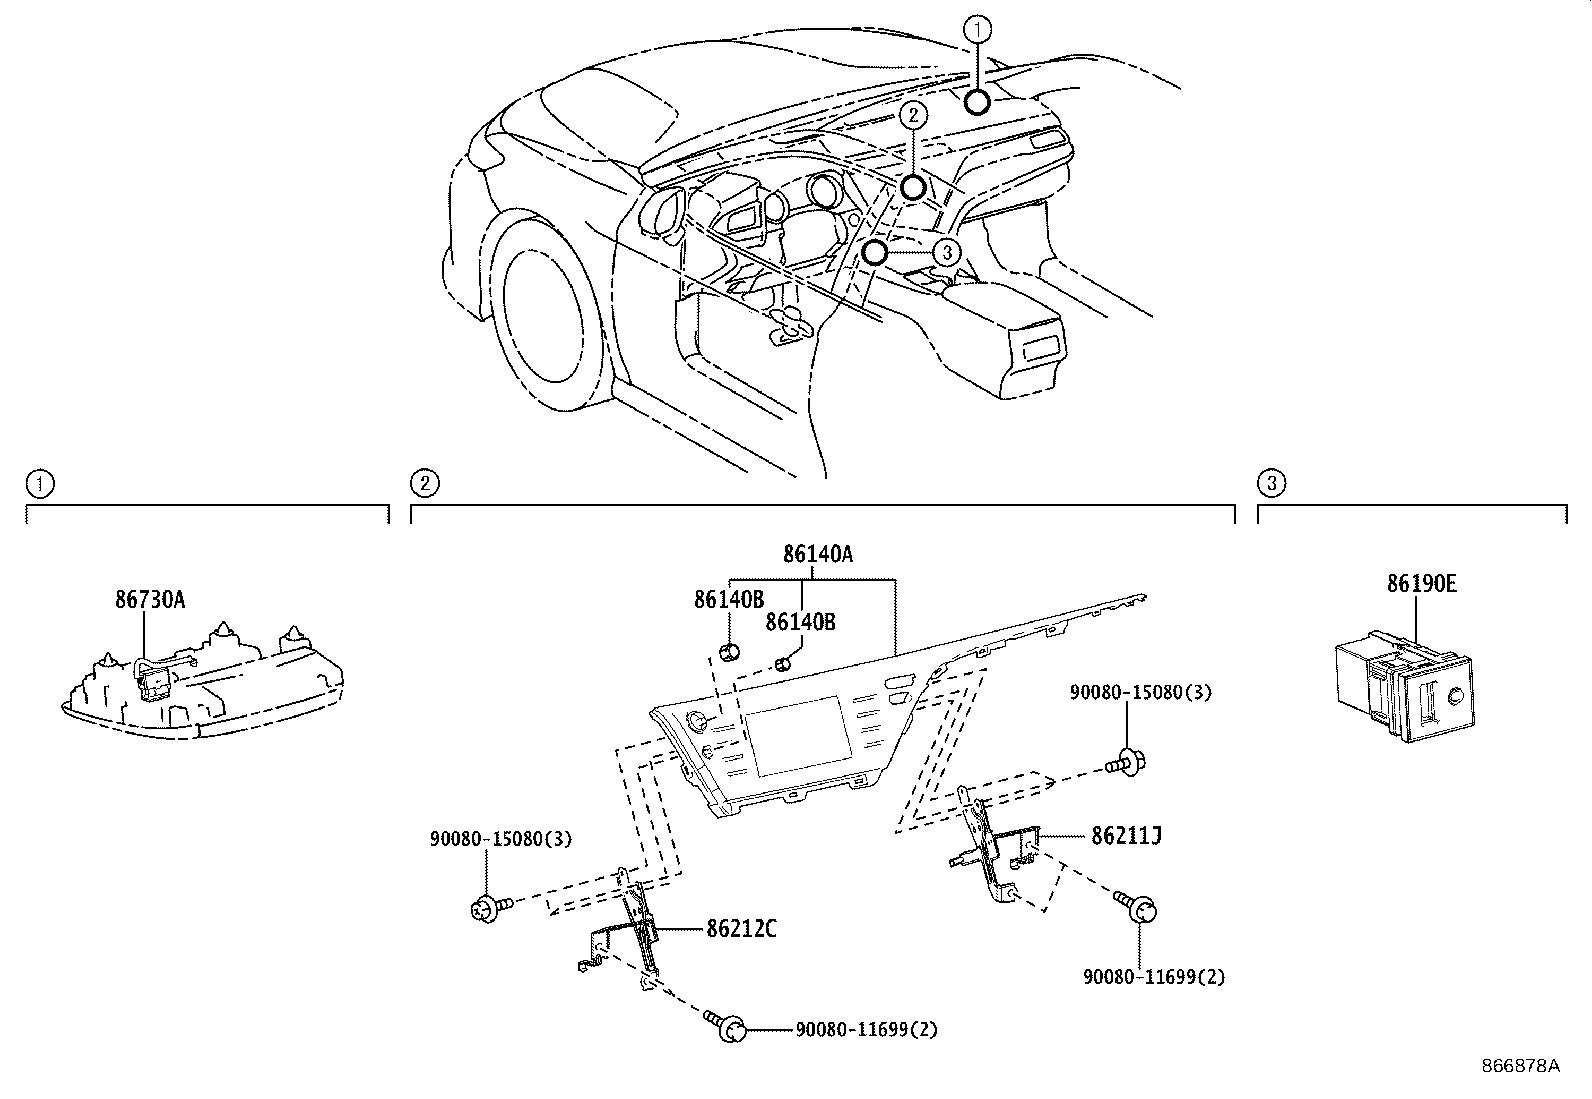 Toyota Camry Receiver assembly, radio & display